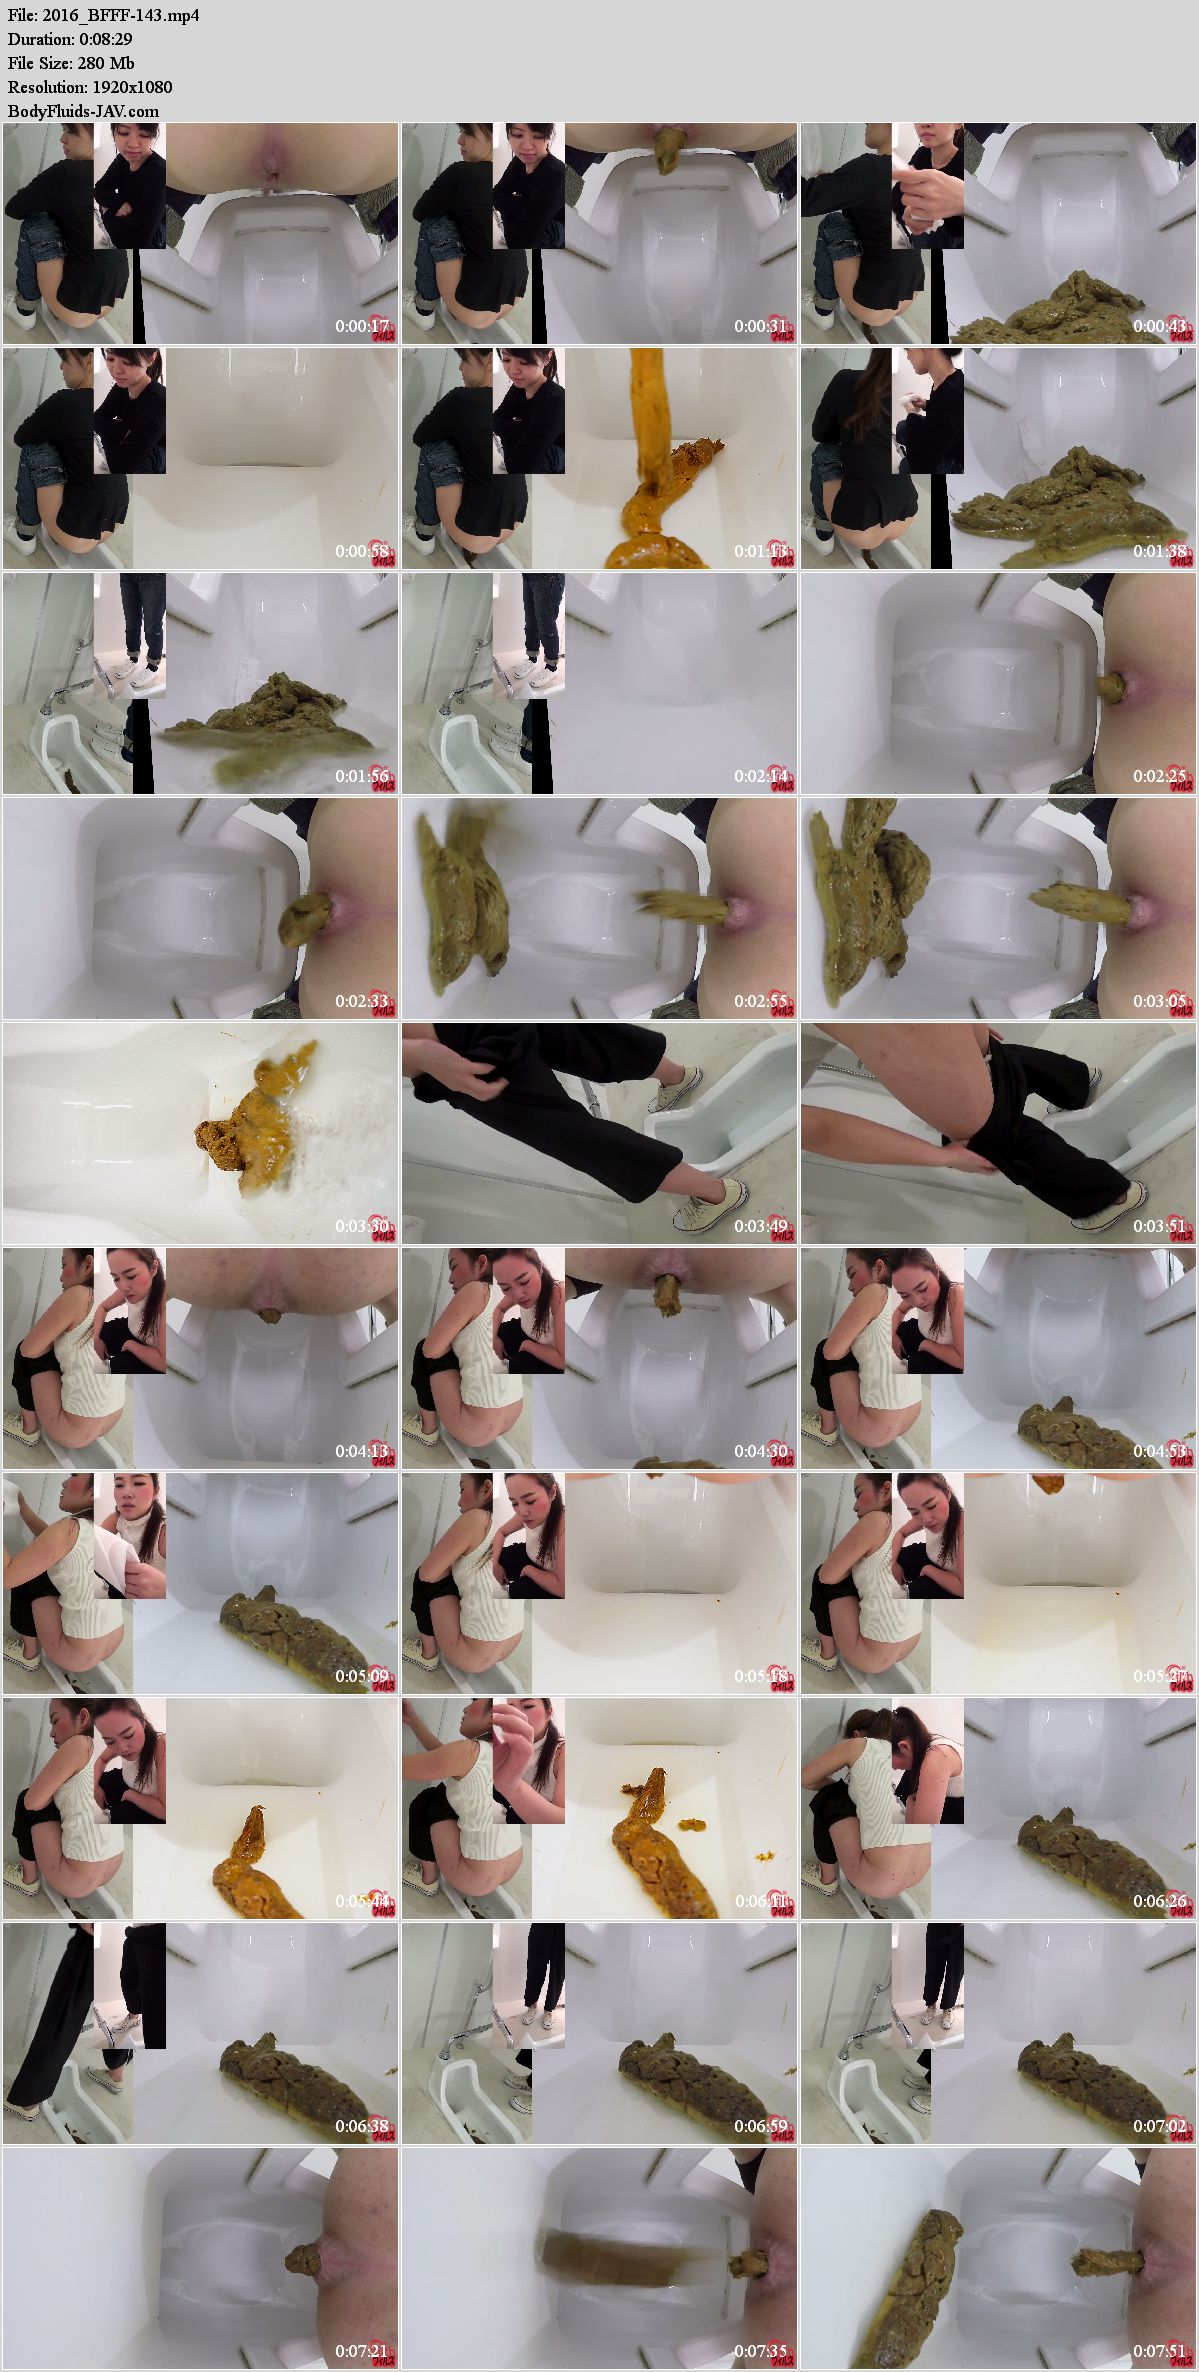 BFFF-143 Girls defecates big shit pile in public toilet close-up. (HD 1080p)